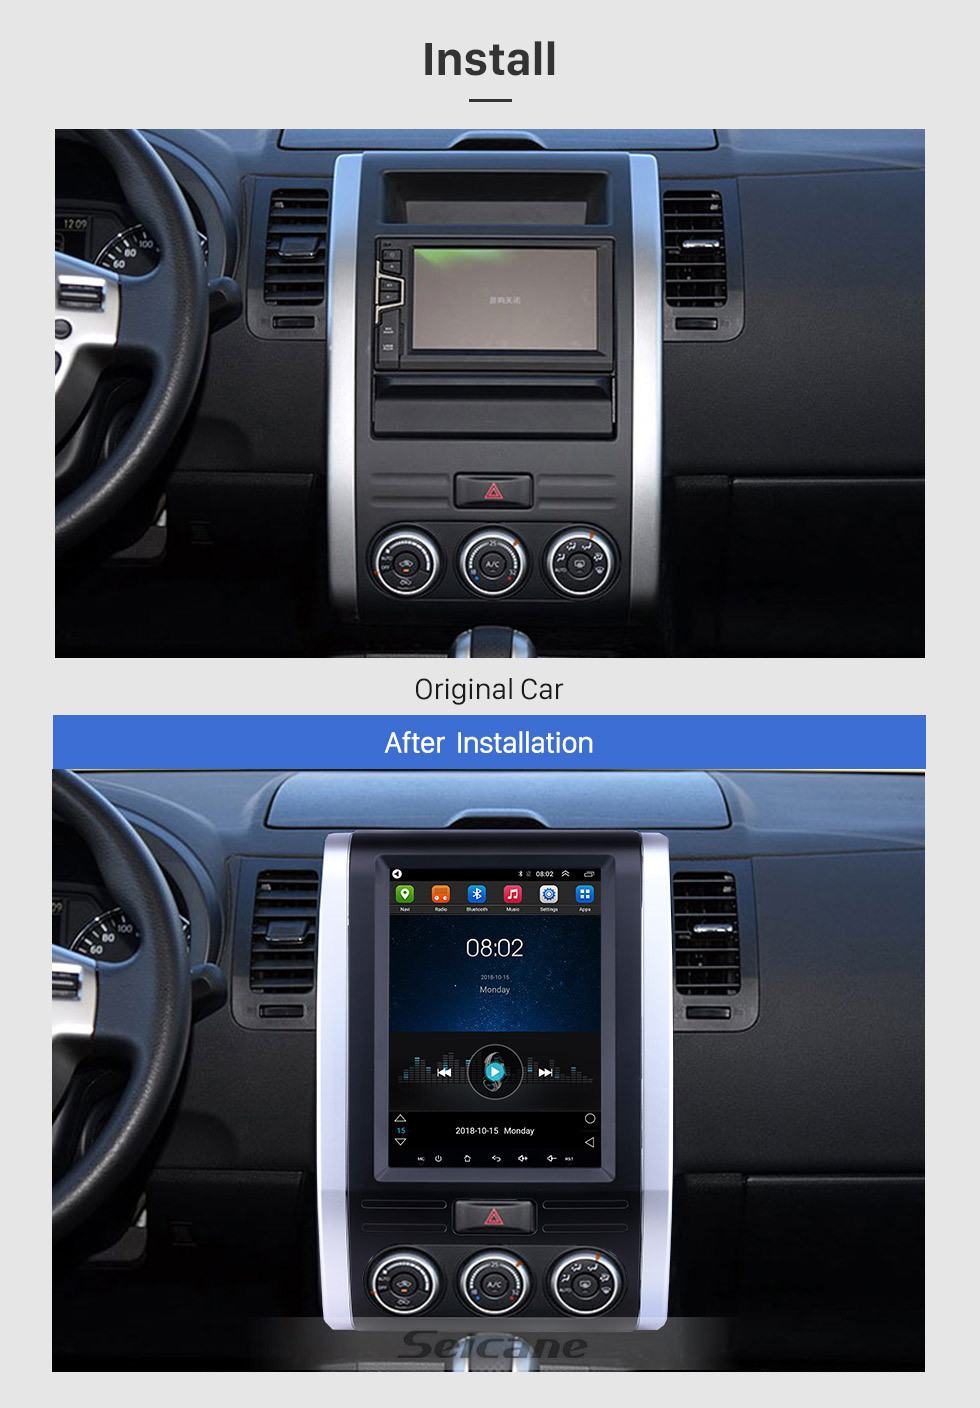 Seicane 9.7 inch Android 9.1 2008-2012 Nissan X-Trail MX6 GPS Navigation Radio with Touchscreen Bluetooth USB AUX WIFI support TPMS Digital TV Carplay